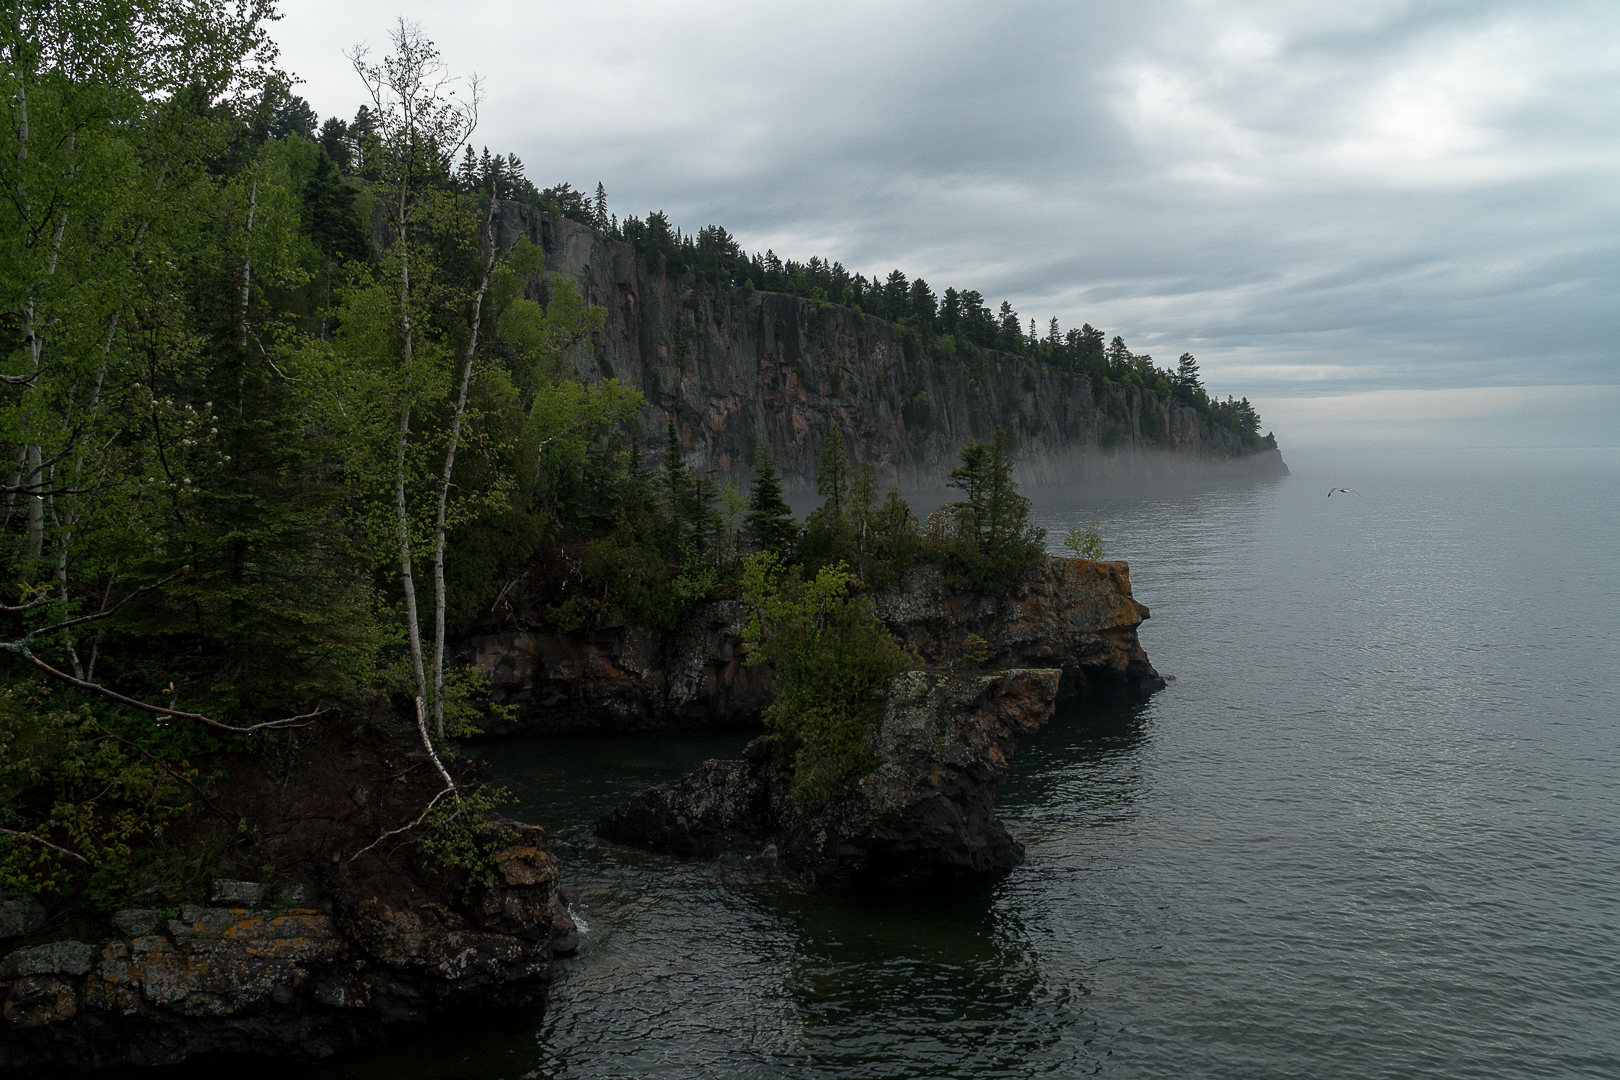 Tettegouche State Park, Shovel Point